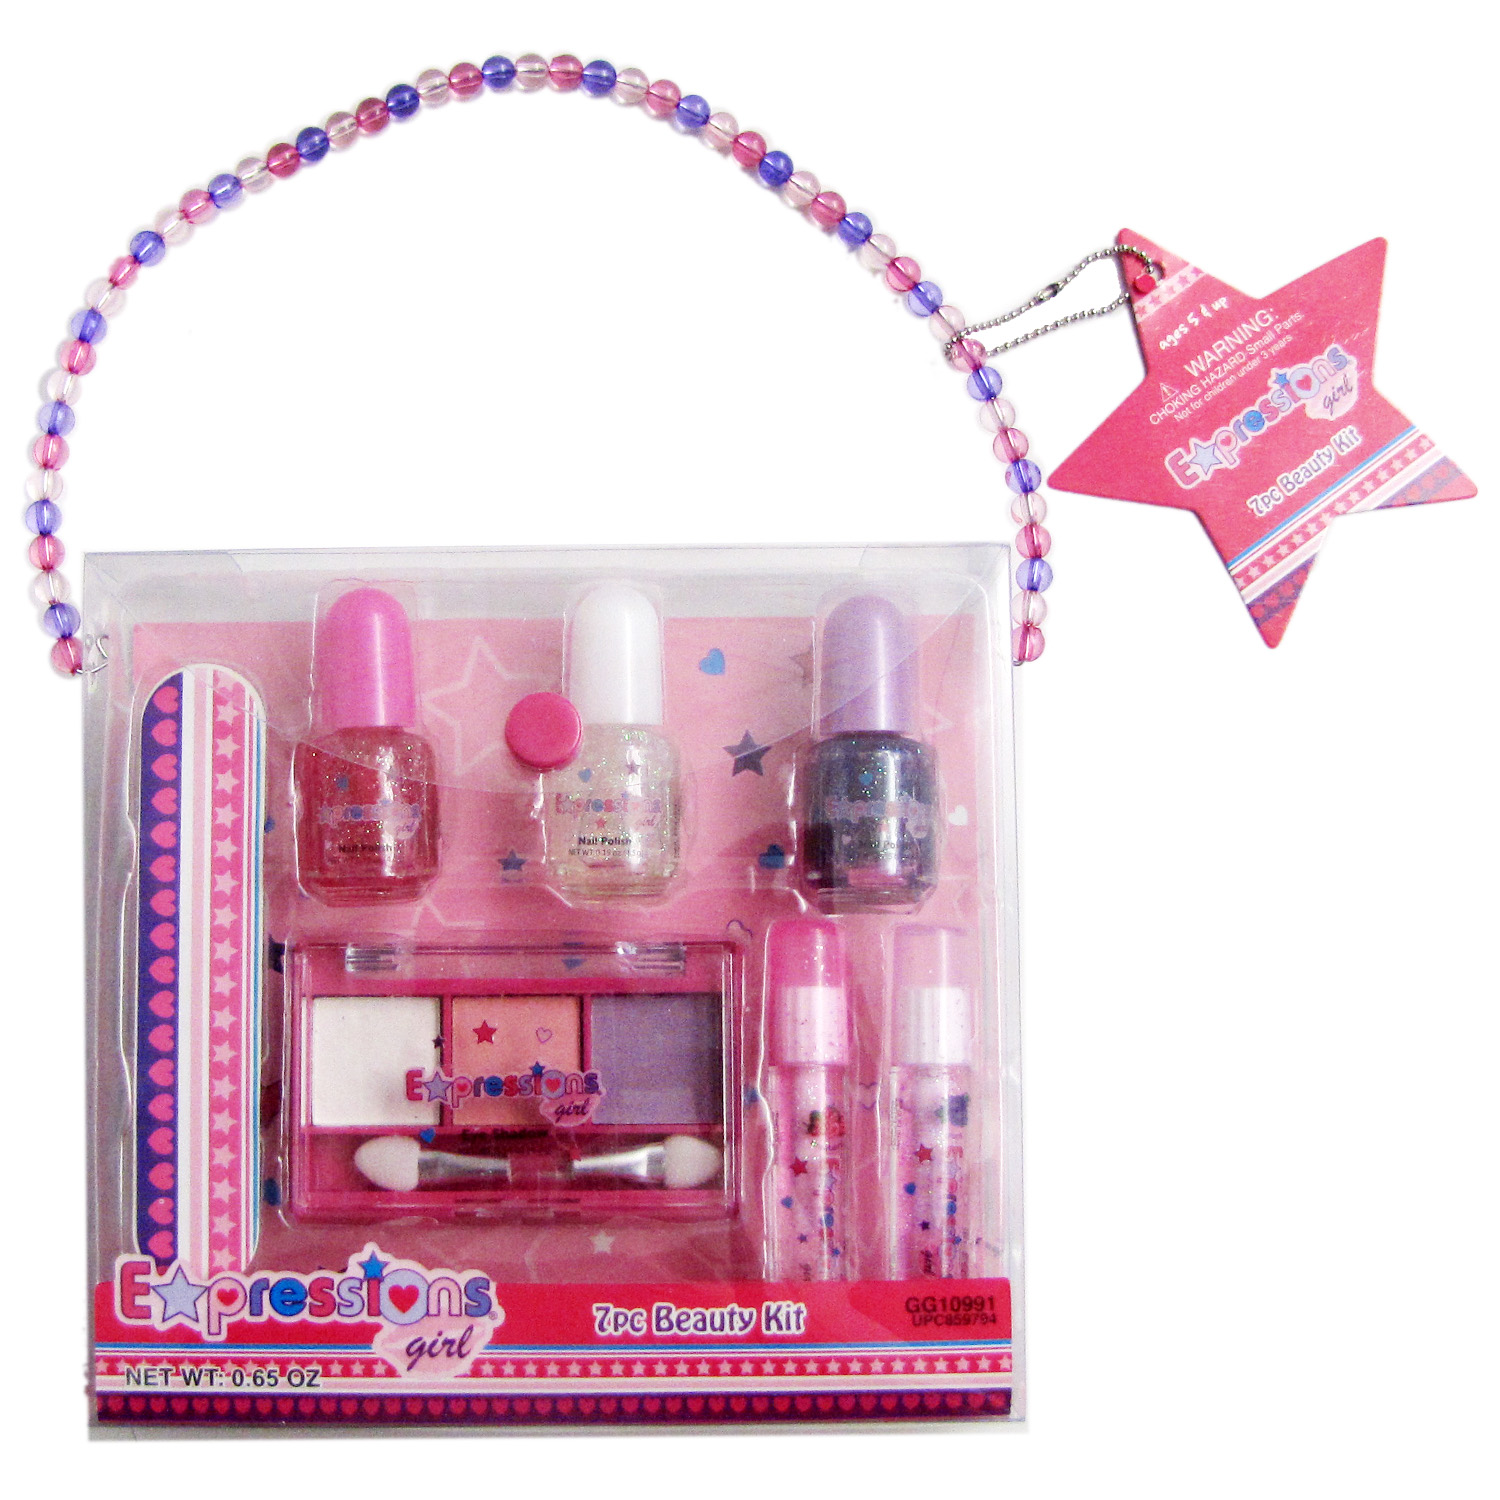 Expressions Girl Mini 7-Piece Beauty Set - Eye Shadow, Lip Gloss, Nail Polish & Nail File